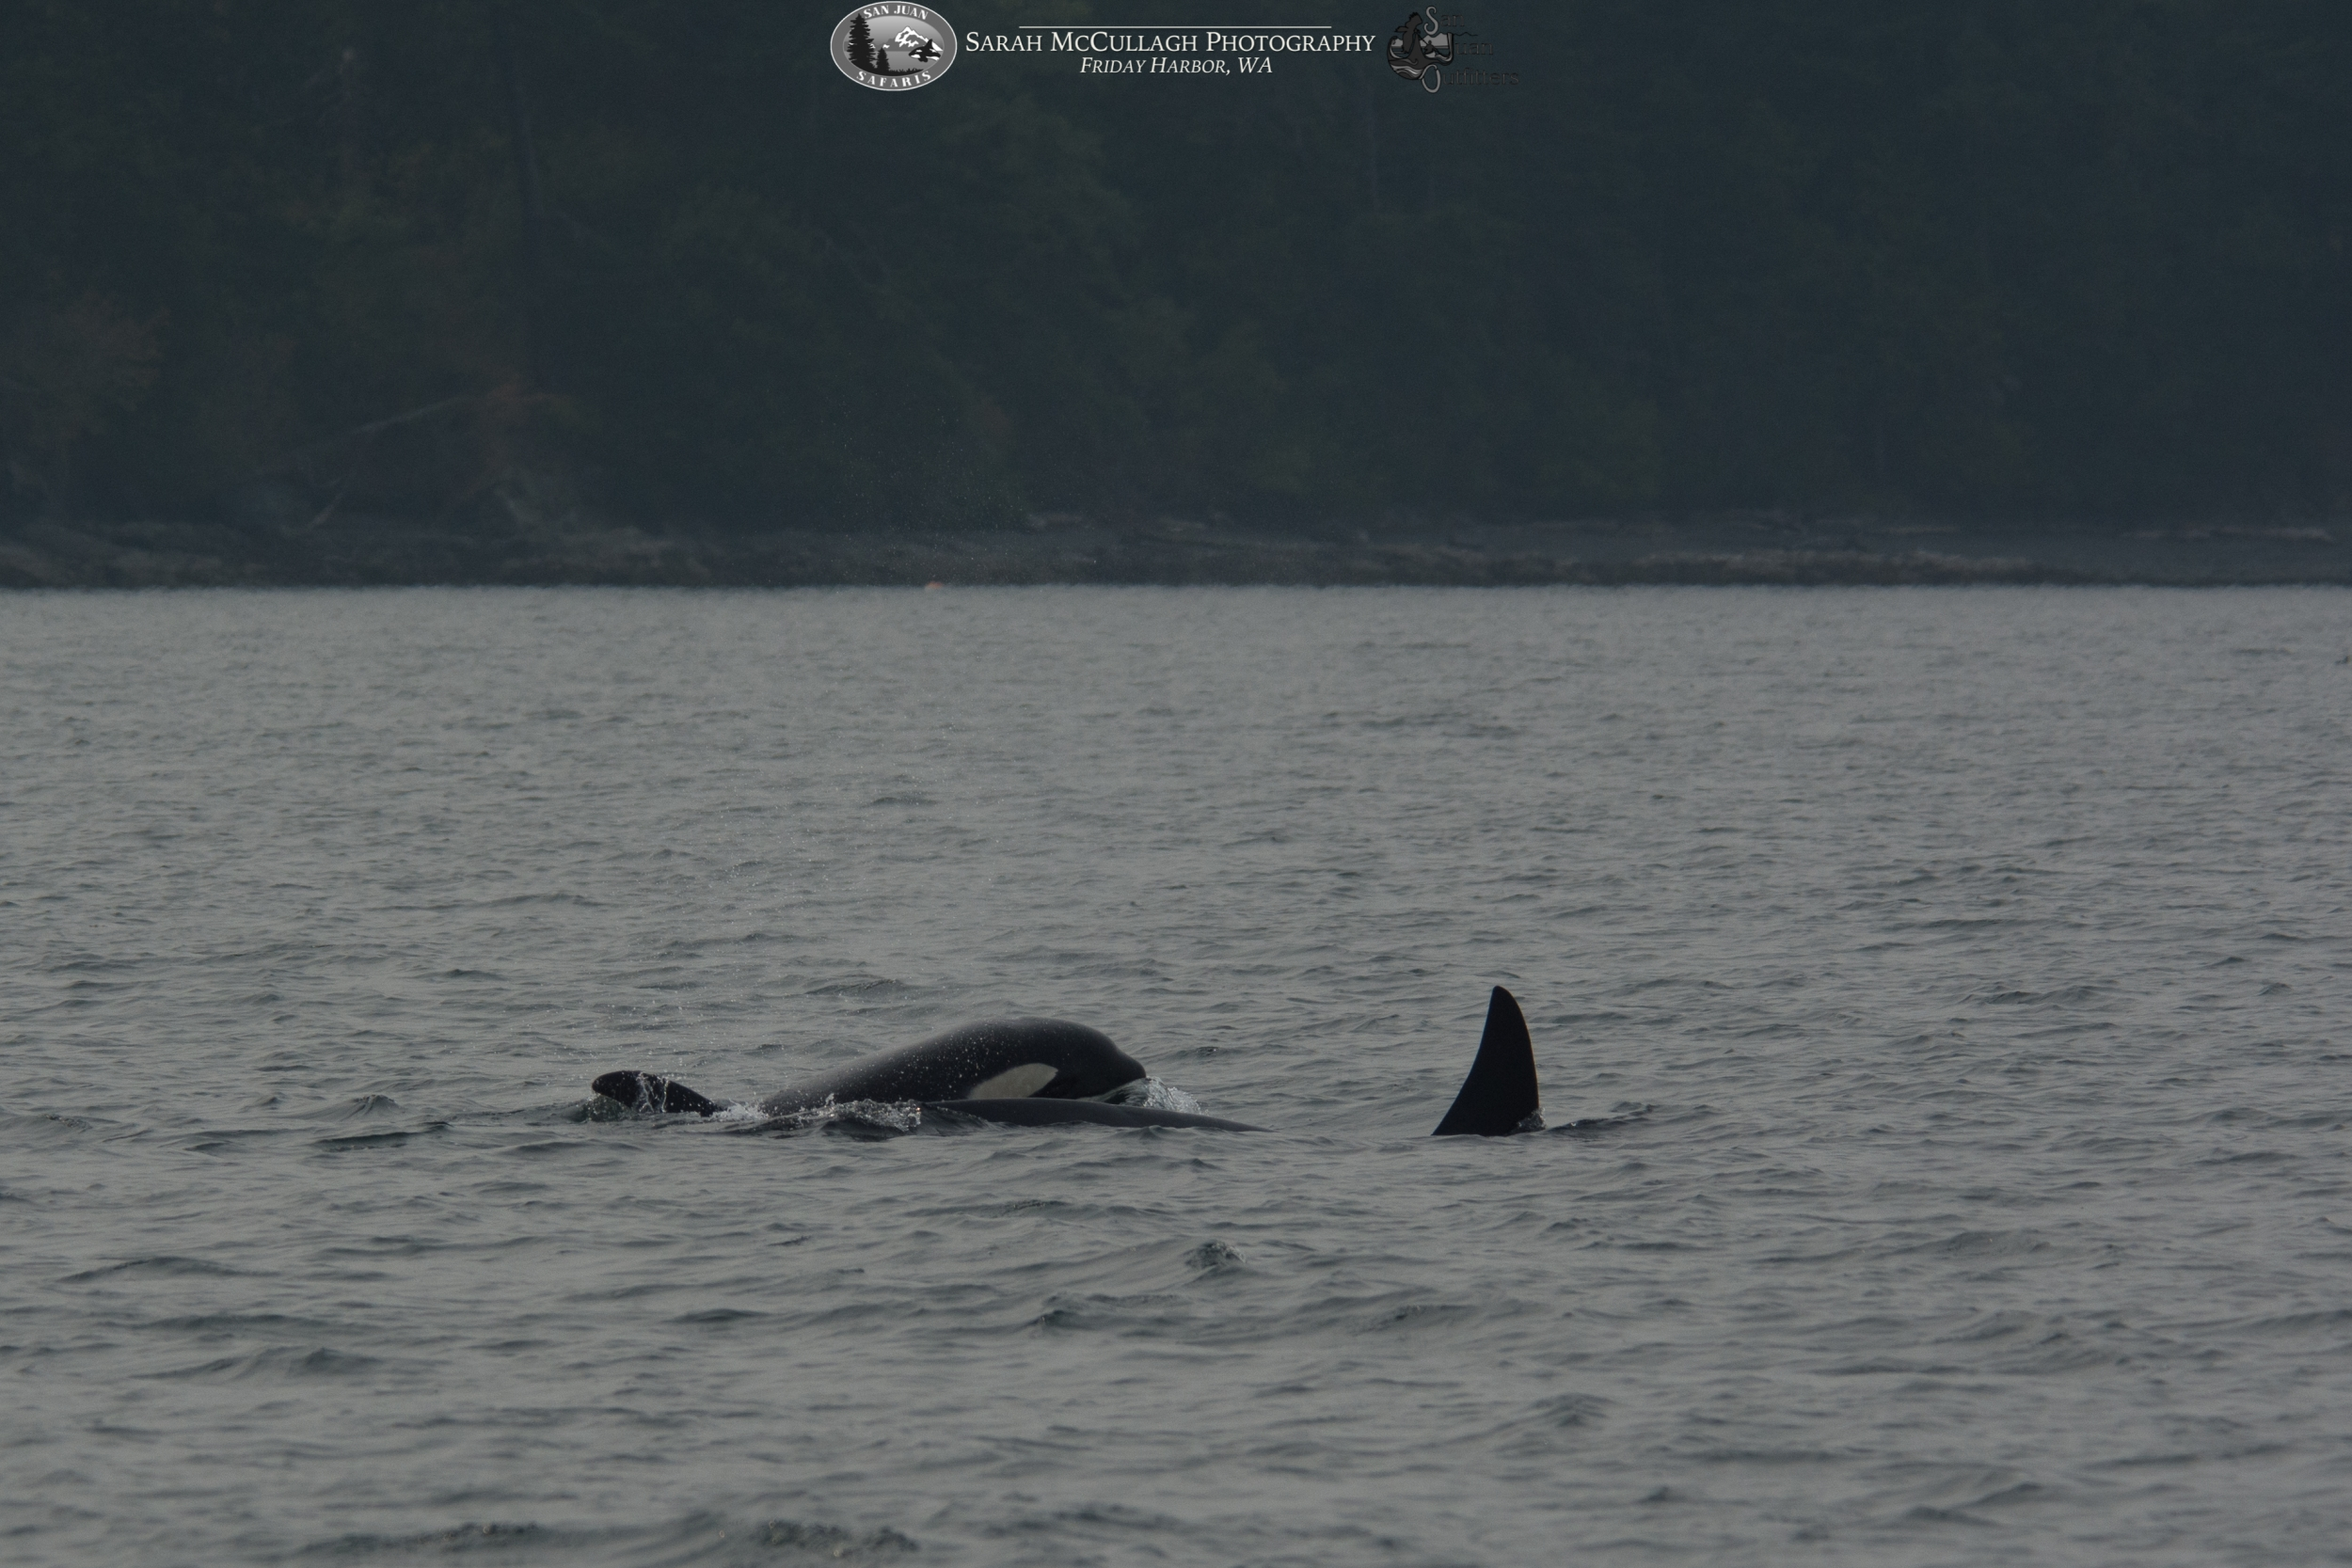 Orcas: T002C4 with T002C